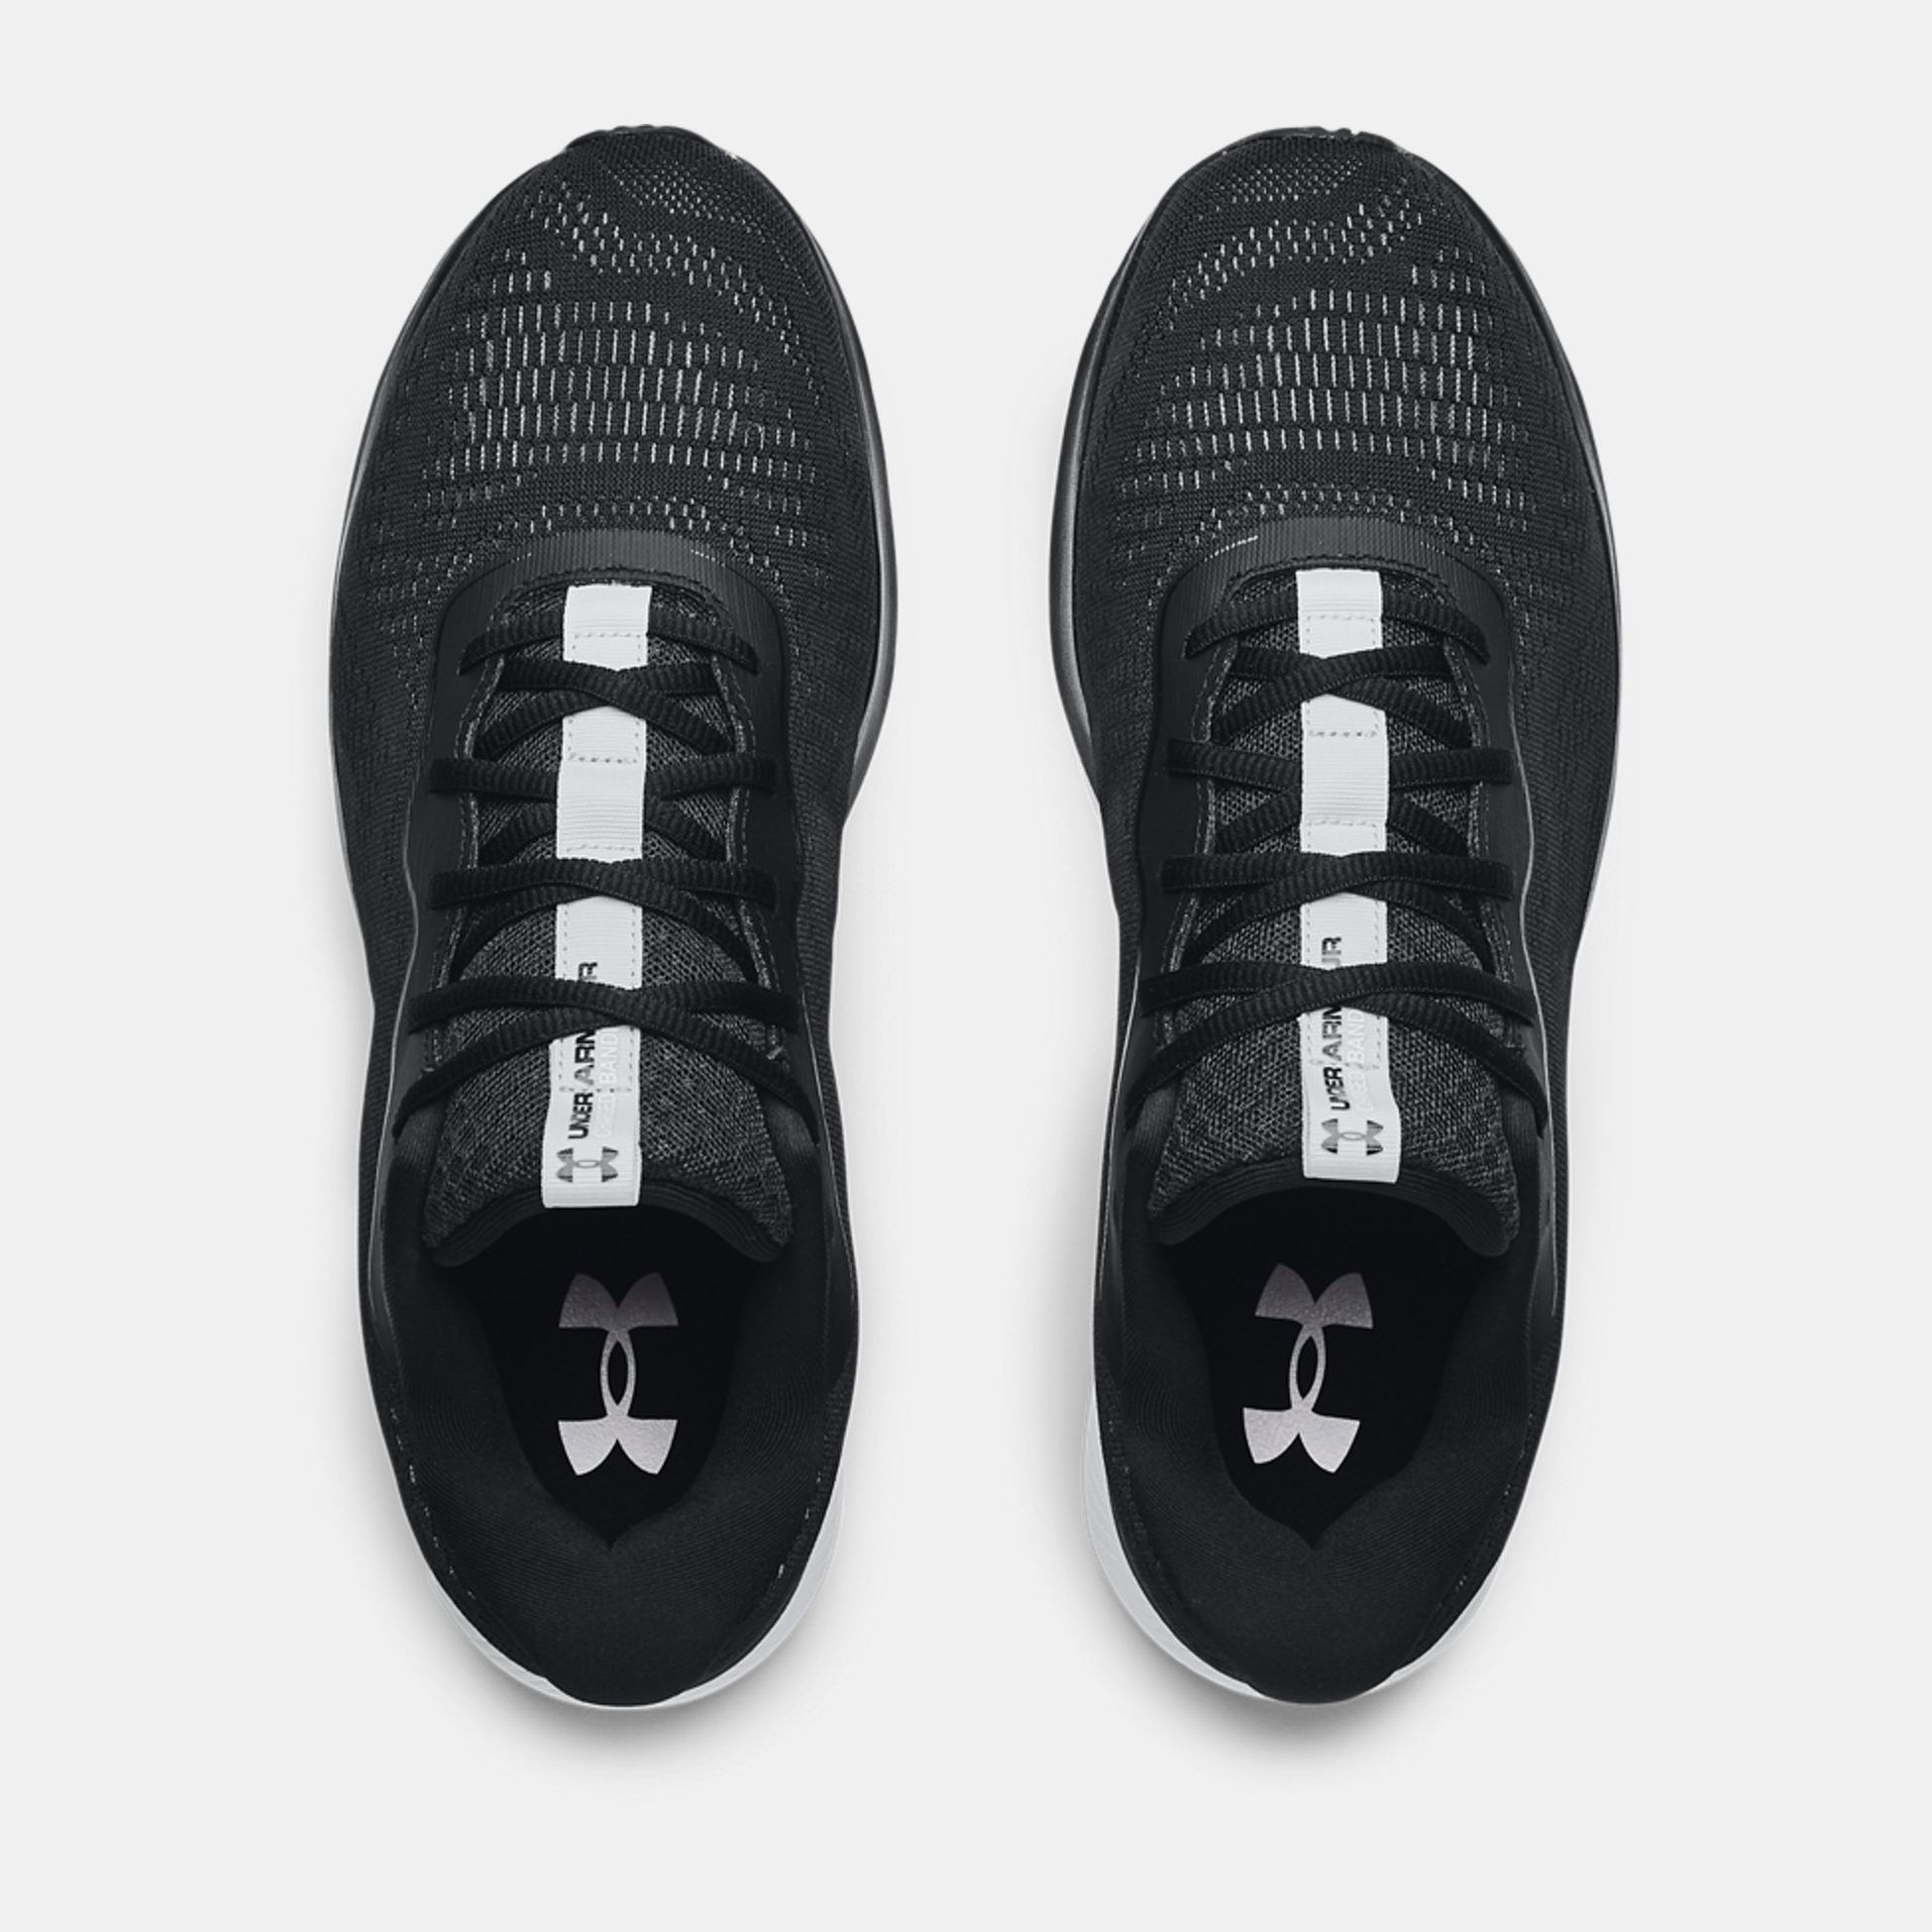 Shoes -  under armour UA Charged Bandit 7